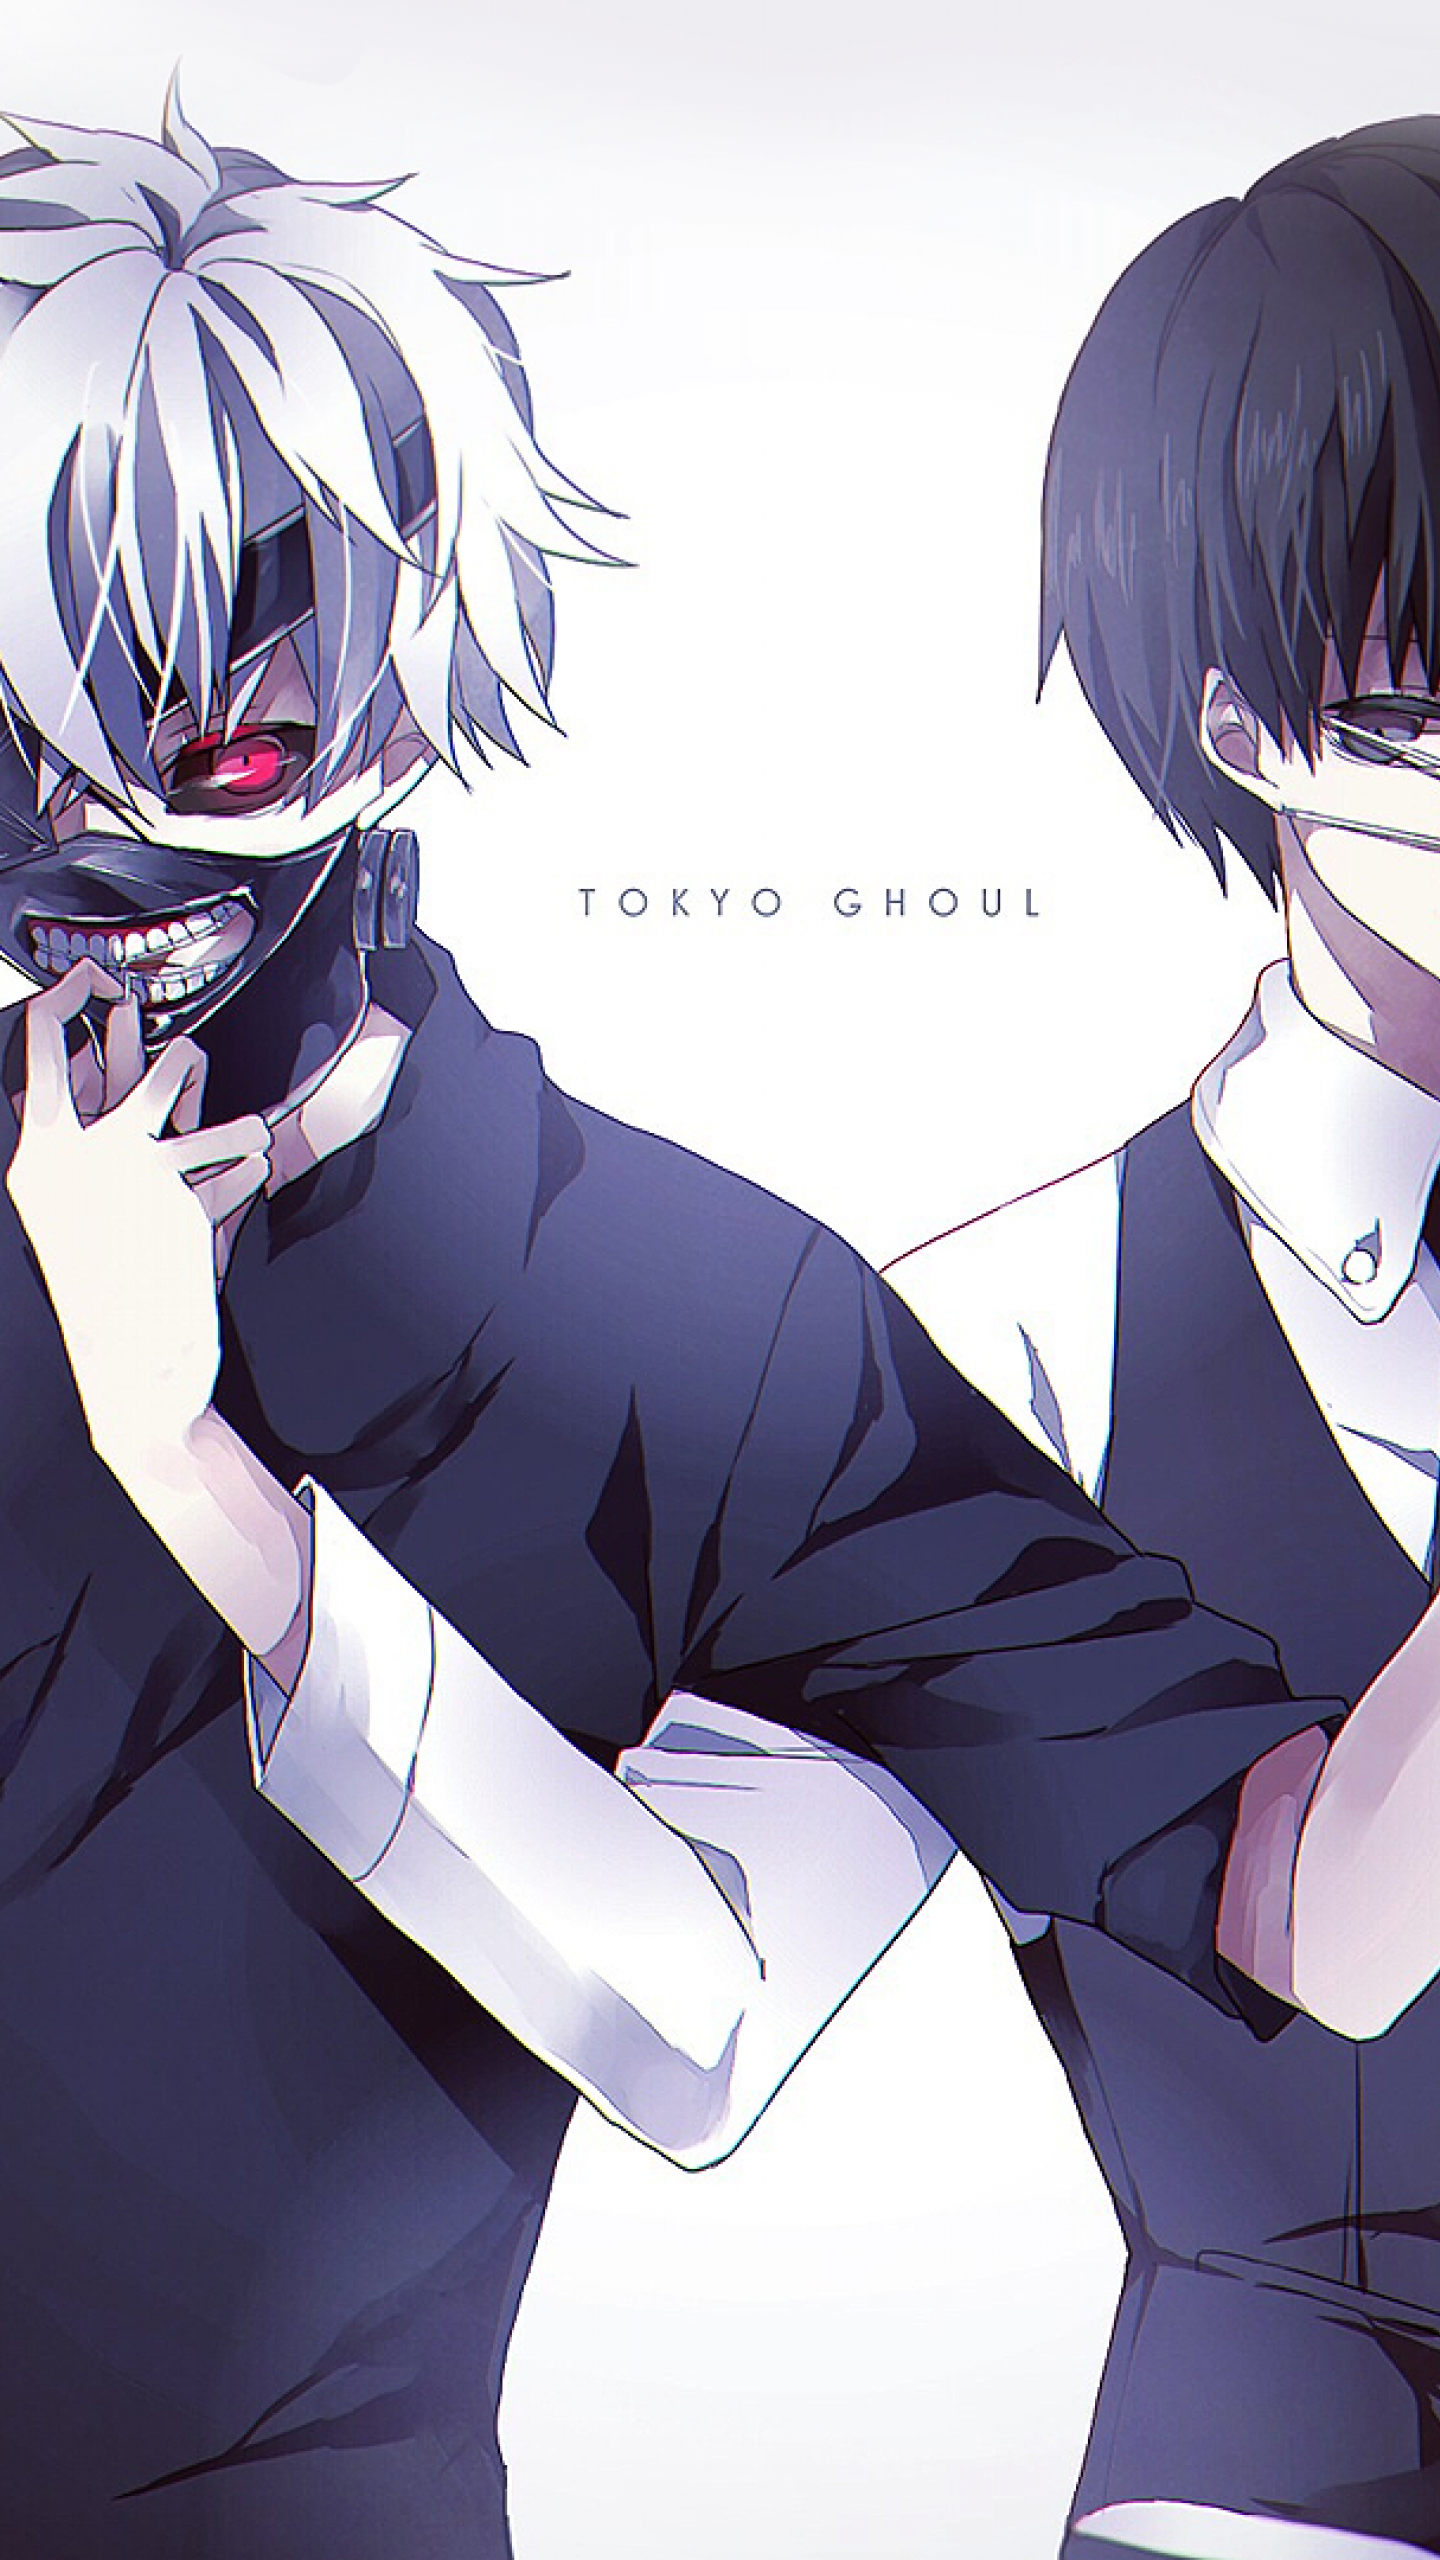 1440x2560 Wallpaper Anime 3d Wallpapers Tokyo Ghoul Wallpapers Tokyo Ghoul Anime Tokyo Ghoul